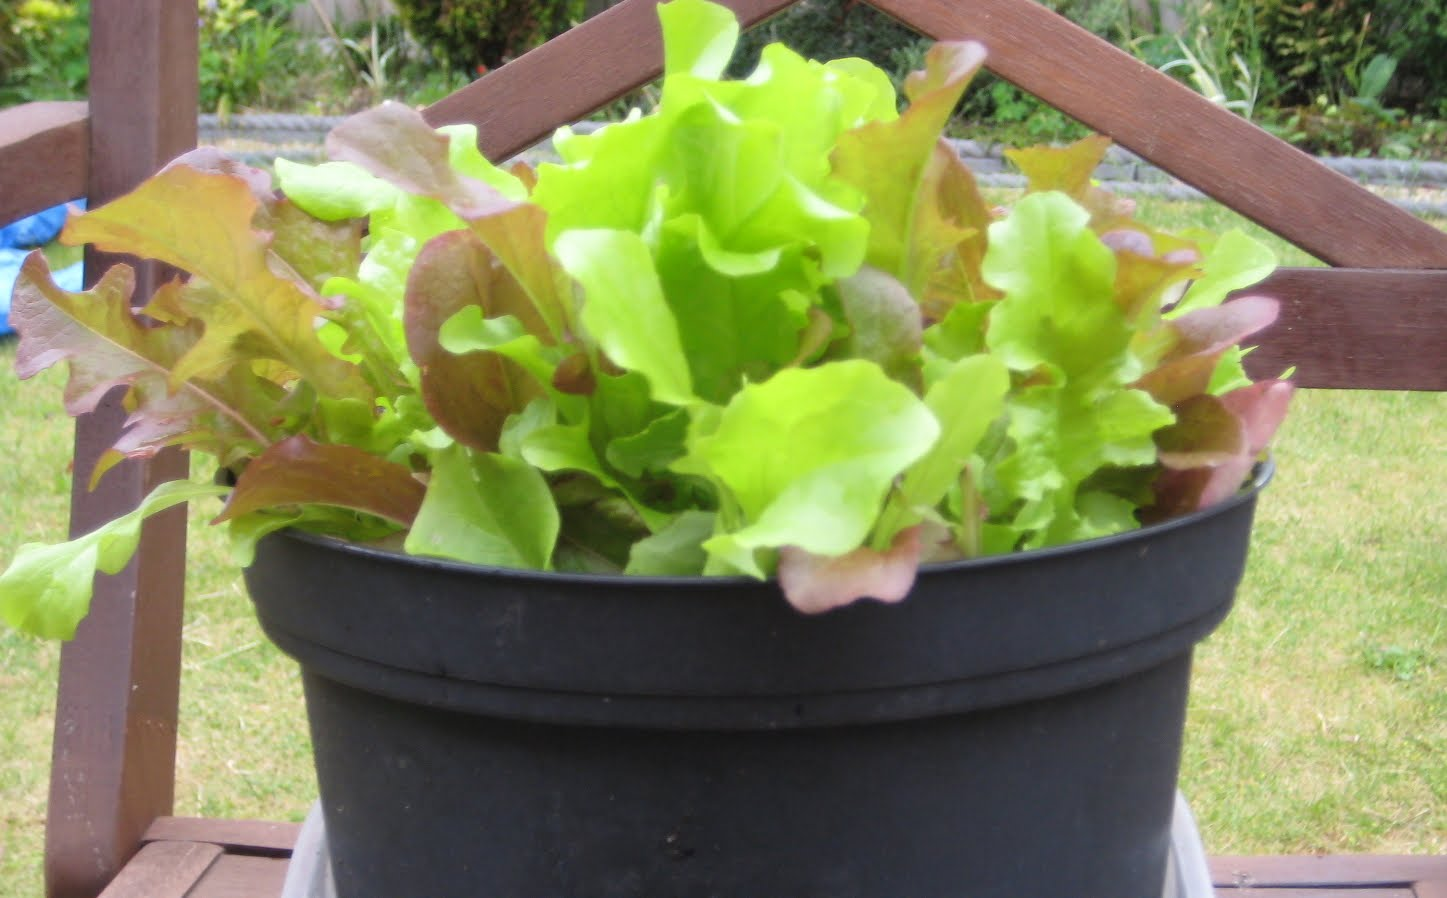 Grow your own fruit and vegetables our home grown salad leaves are saving us money - Salads can grow pots eat fresh ...